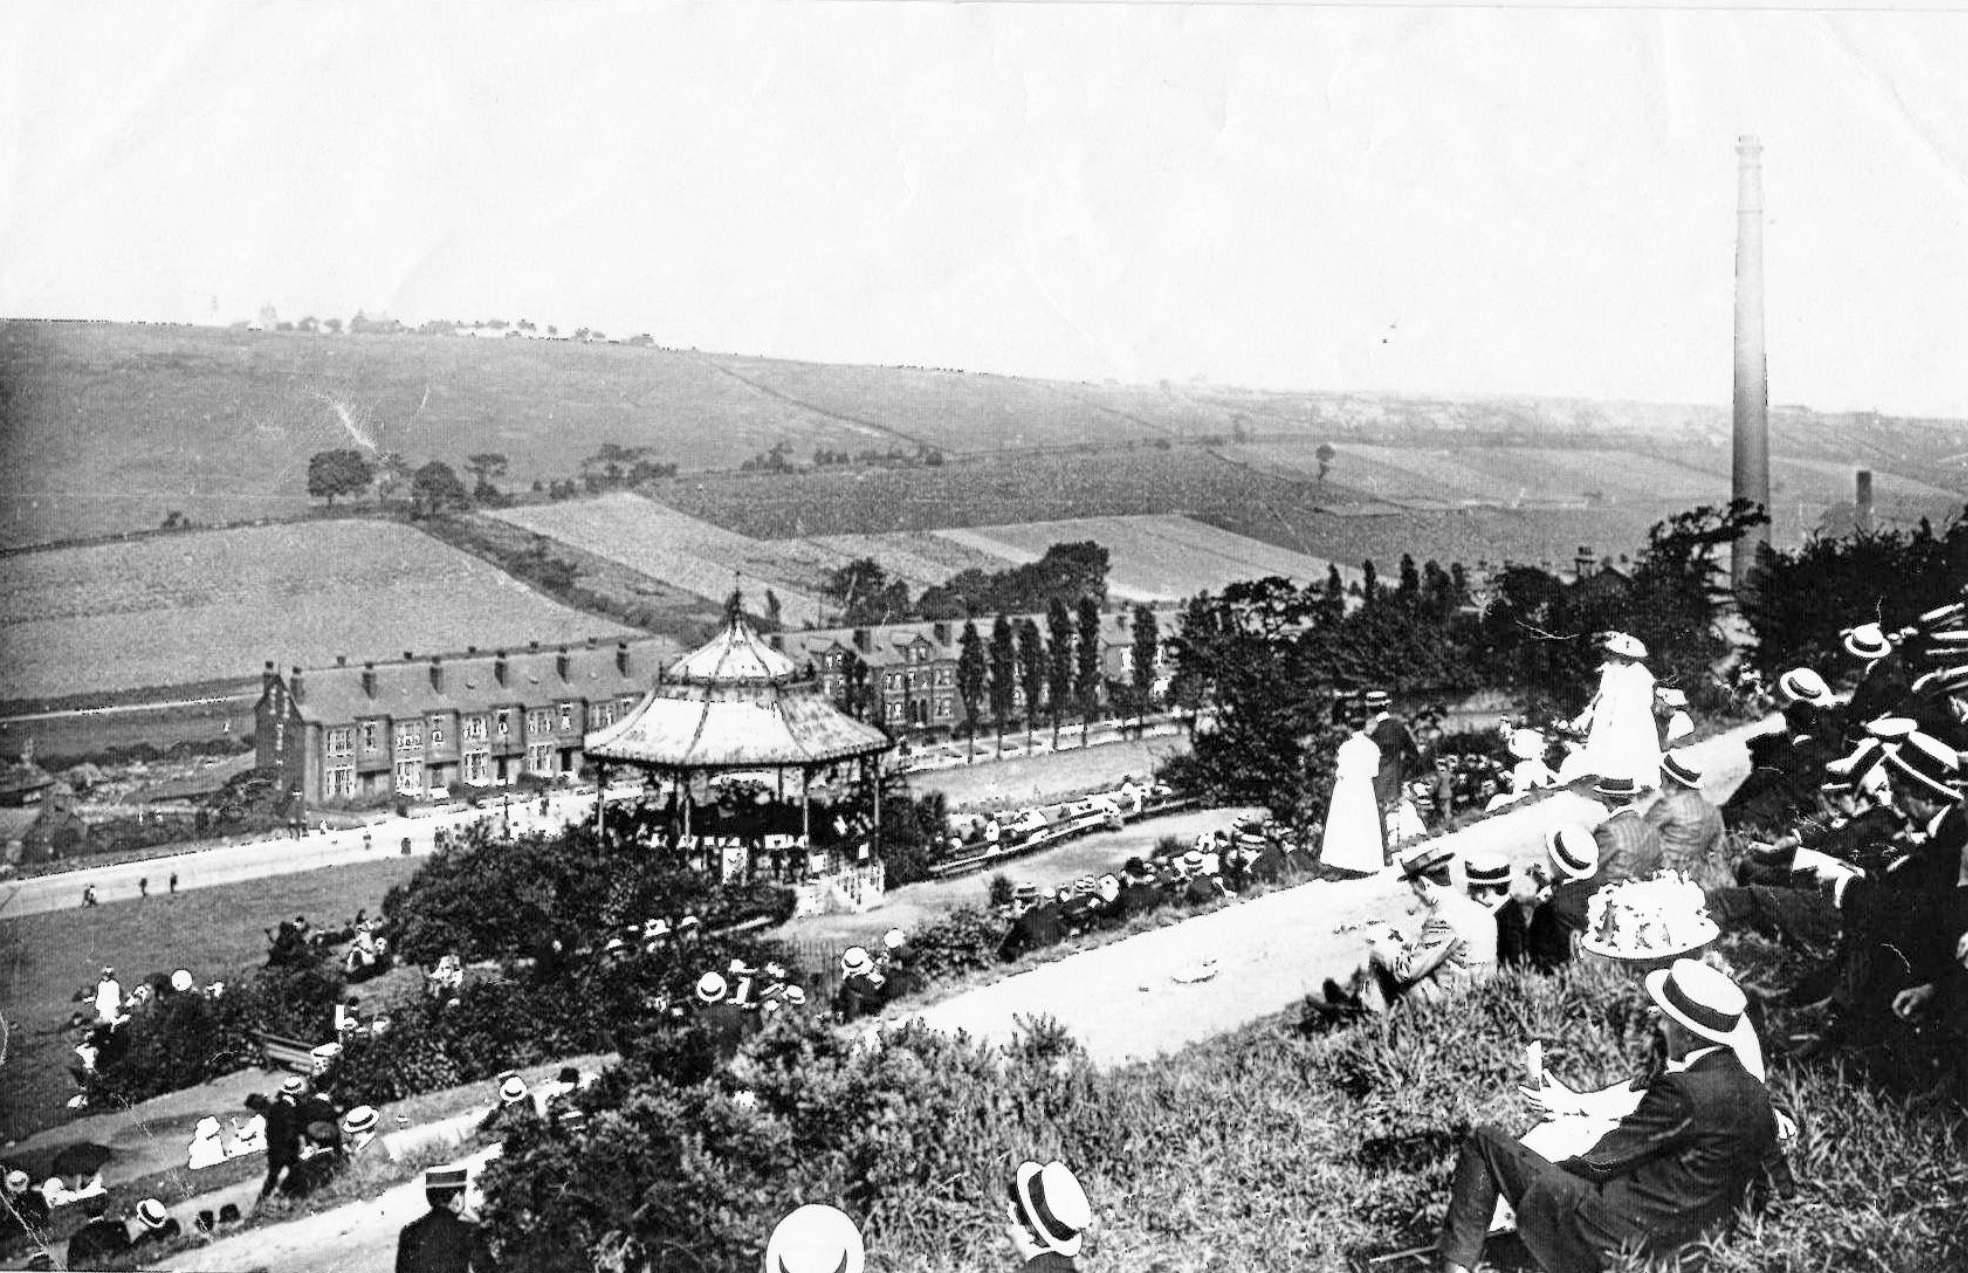 Woodhouse Ridge, with Bandstand, early 1900s